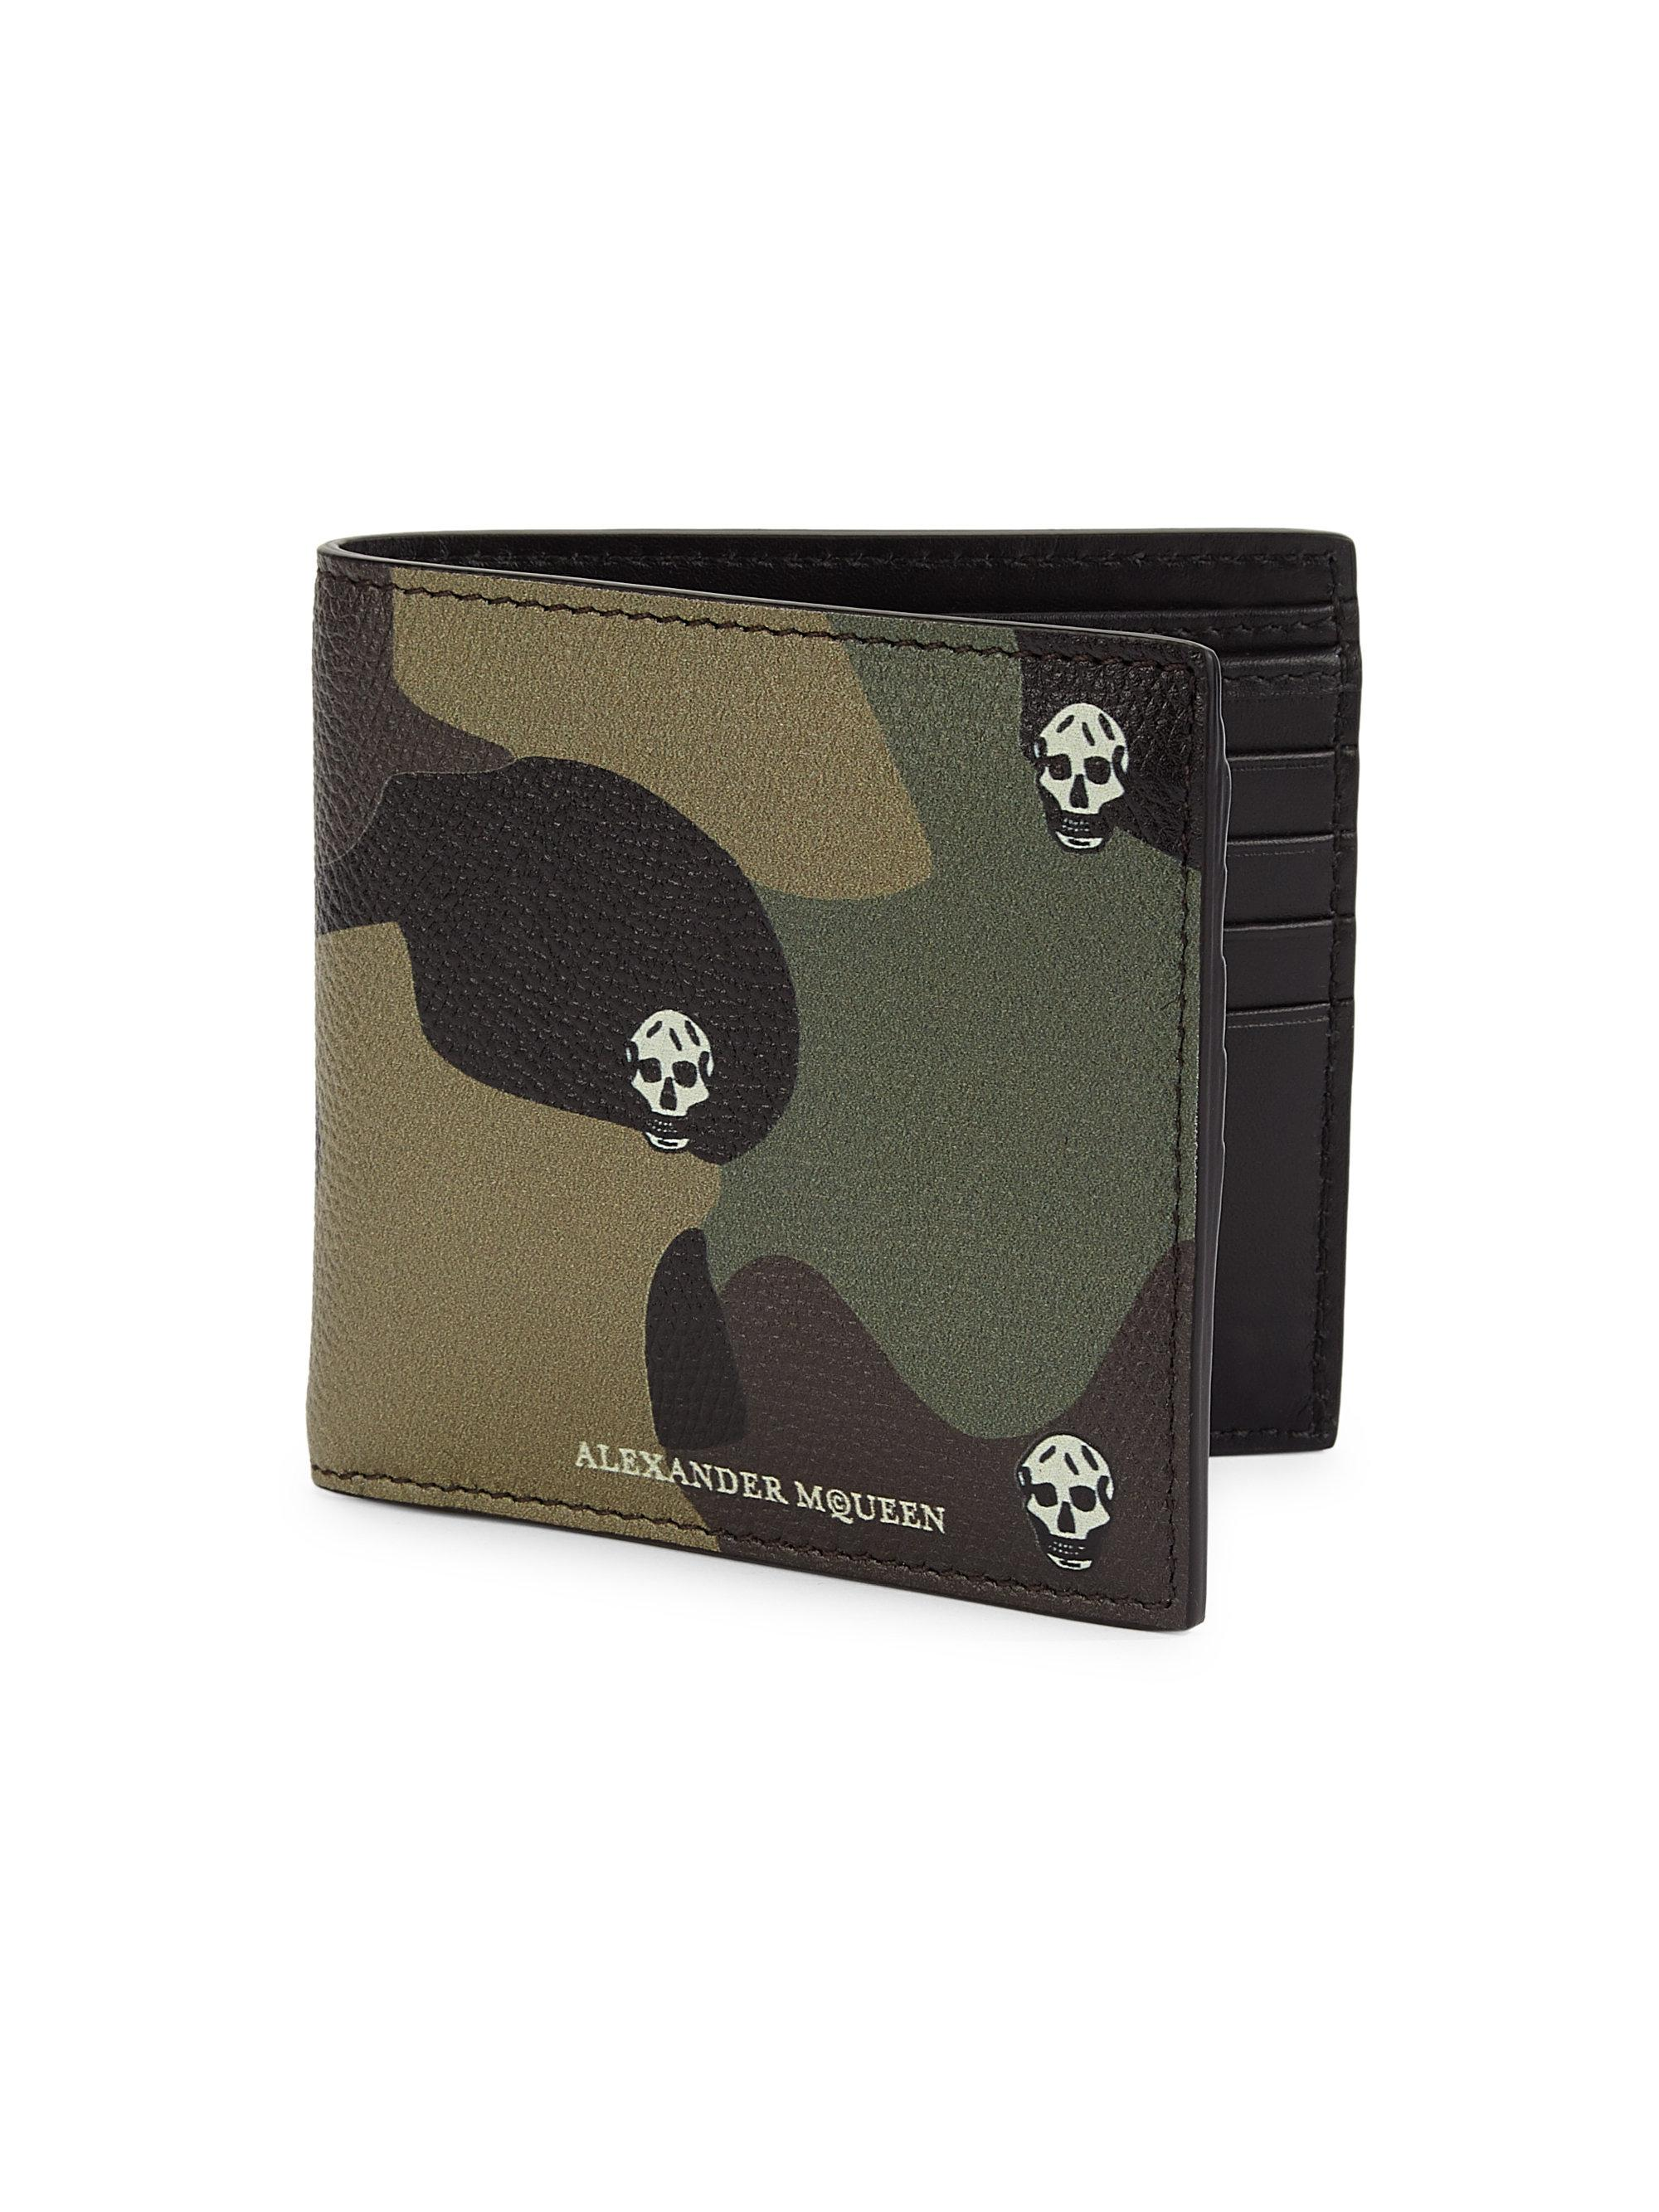 61c7421b97fca Alexander McQueen Camo Leather Billfold Wallet for Men - Lyst